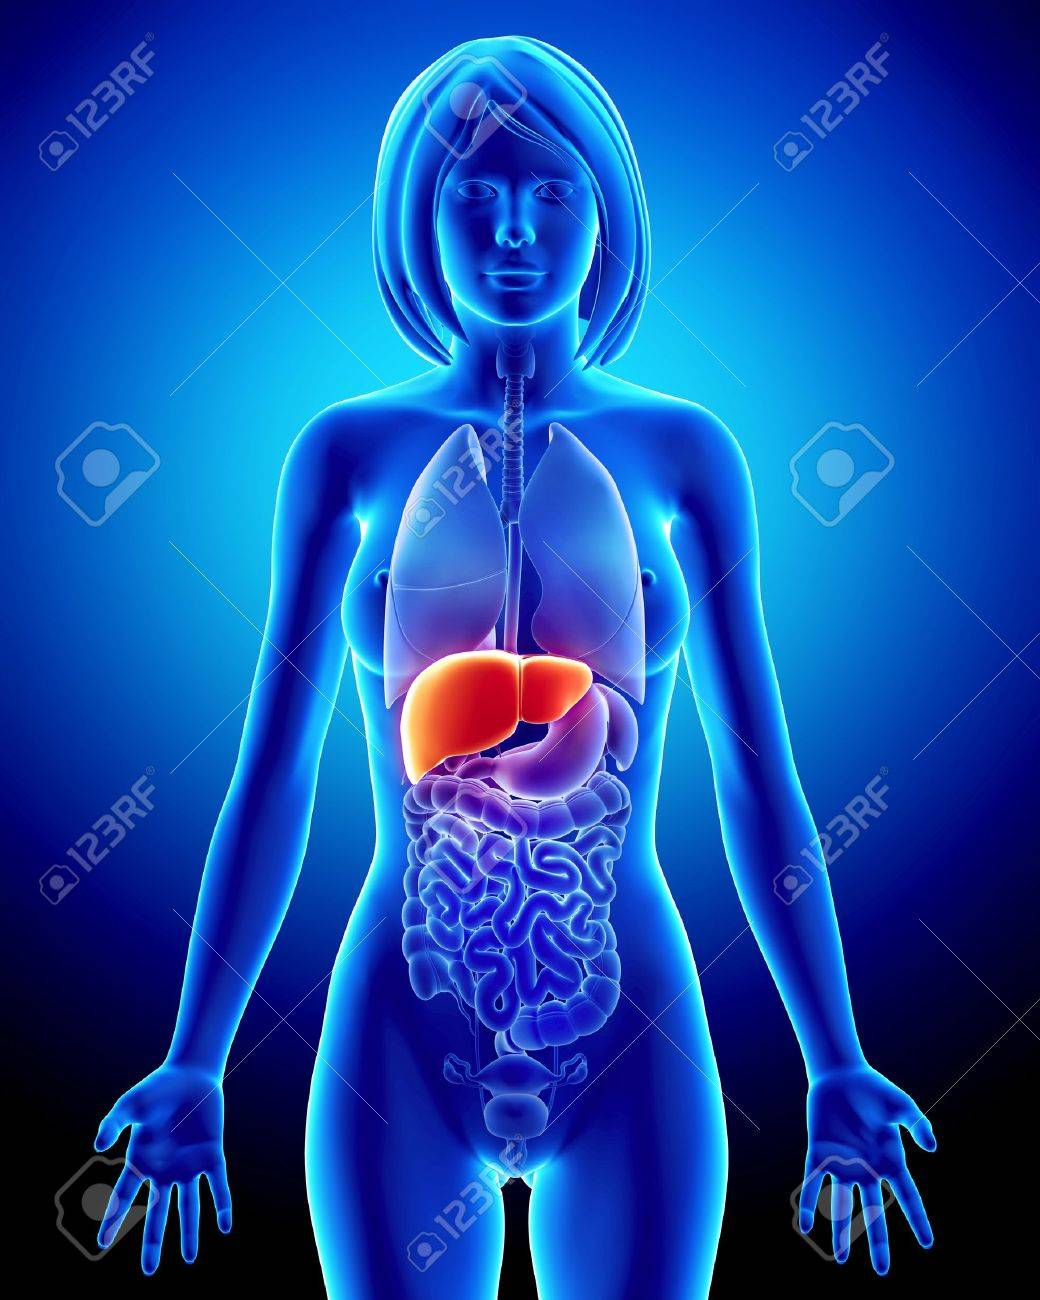 Anatomy of female liver in blue x-ray Stock Photo - 14603597